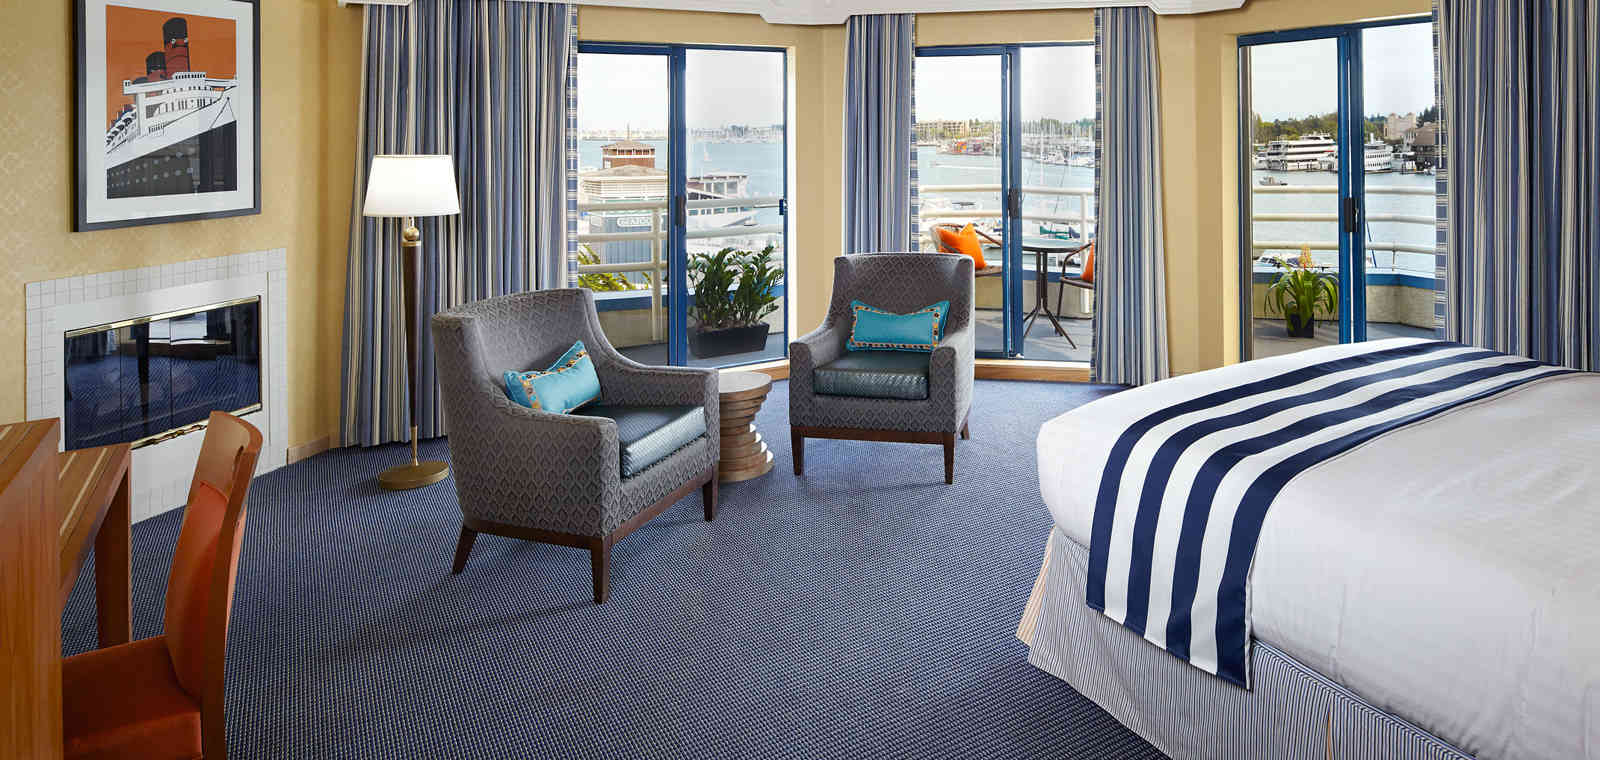 Waterfront Guestroom Suite View 01 Lowres RB0814